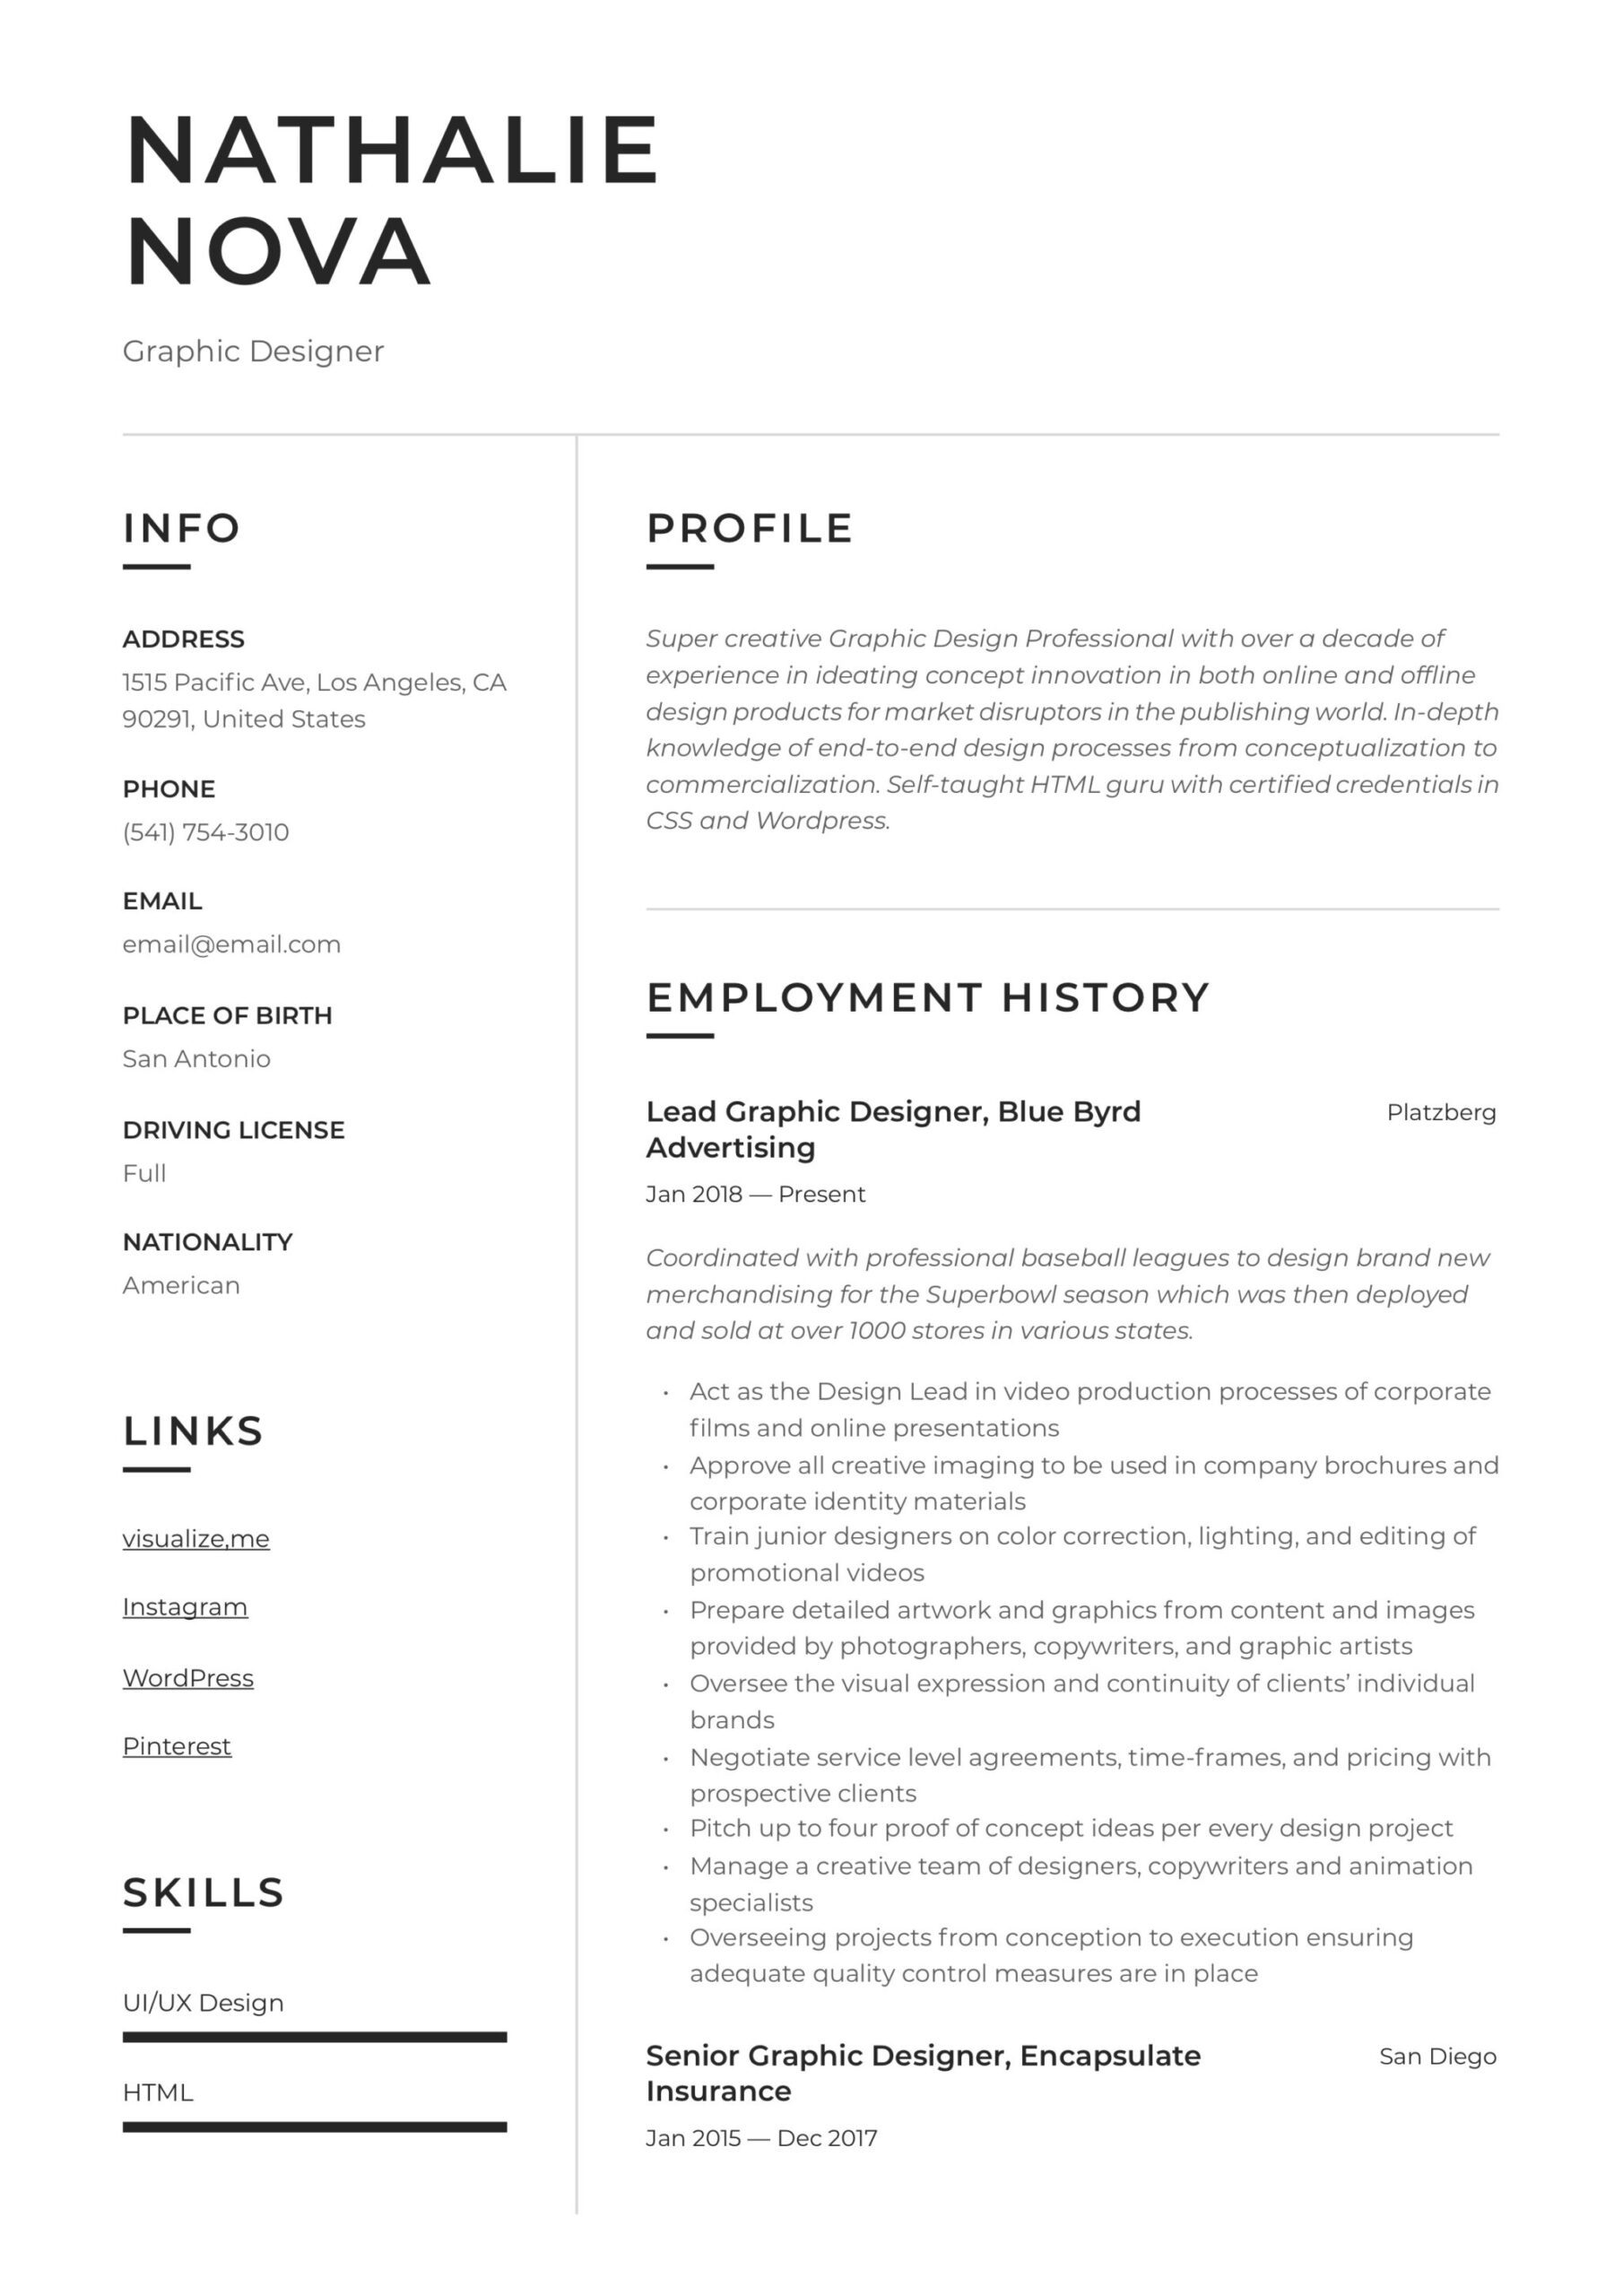 graphic designer resume writing guide examples senior sample shoe salesperson makeup for Resume Senior Graphic Designer Resume Sample